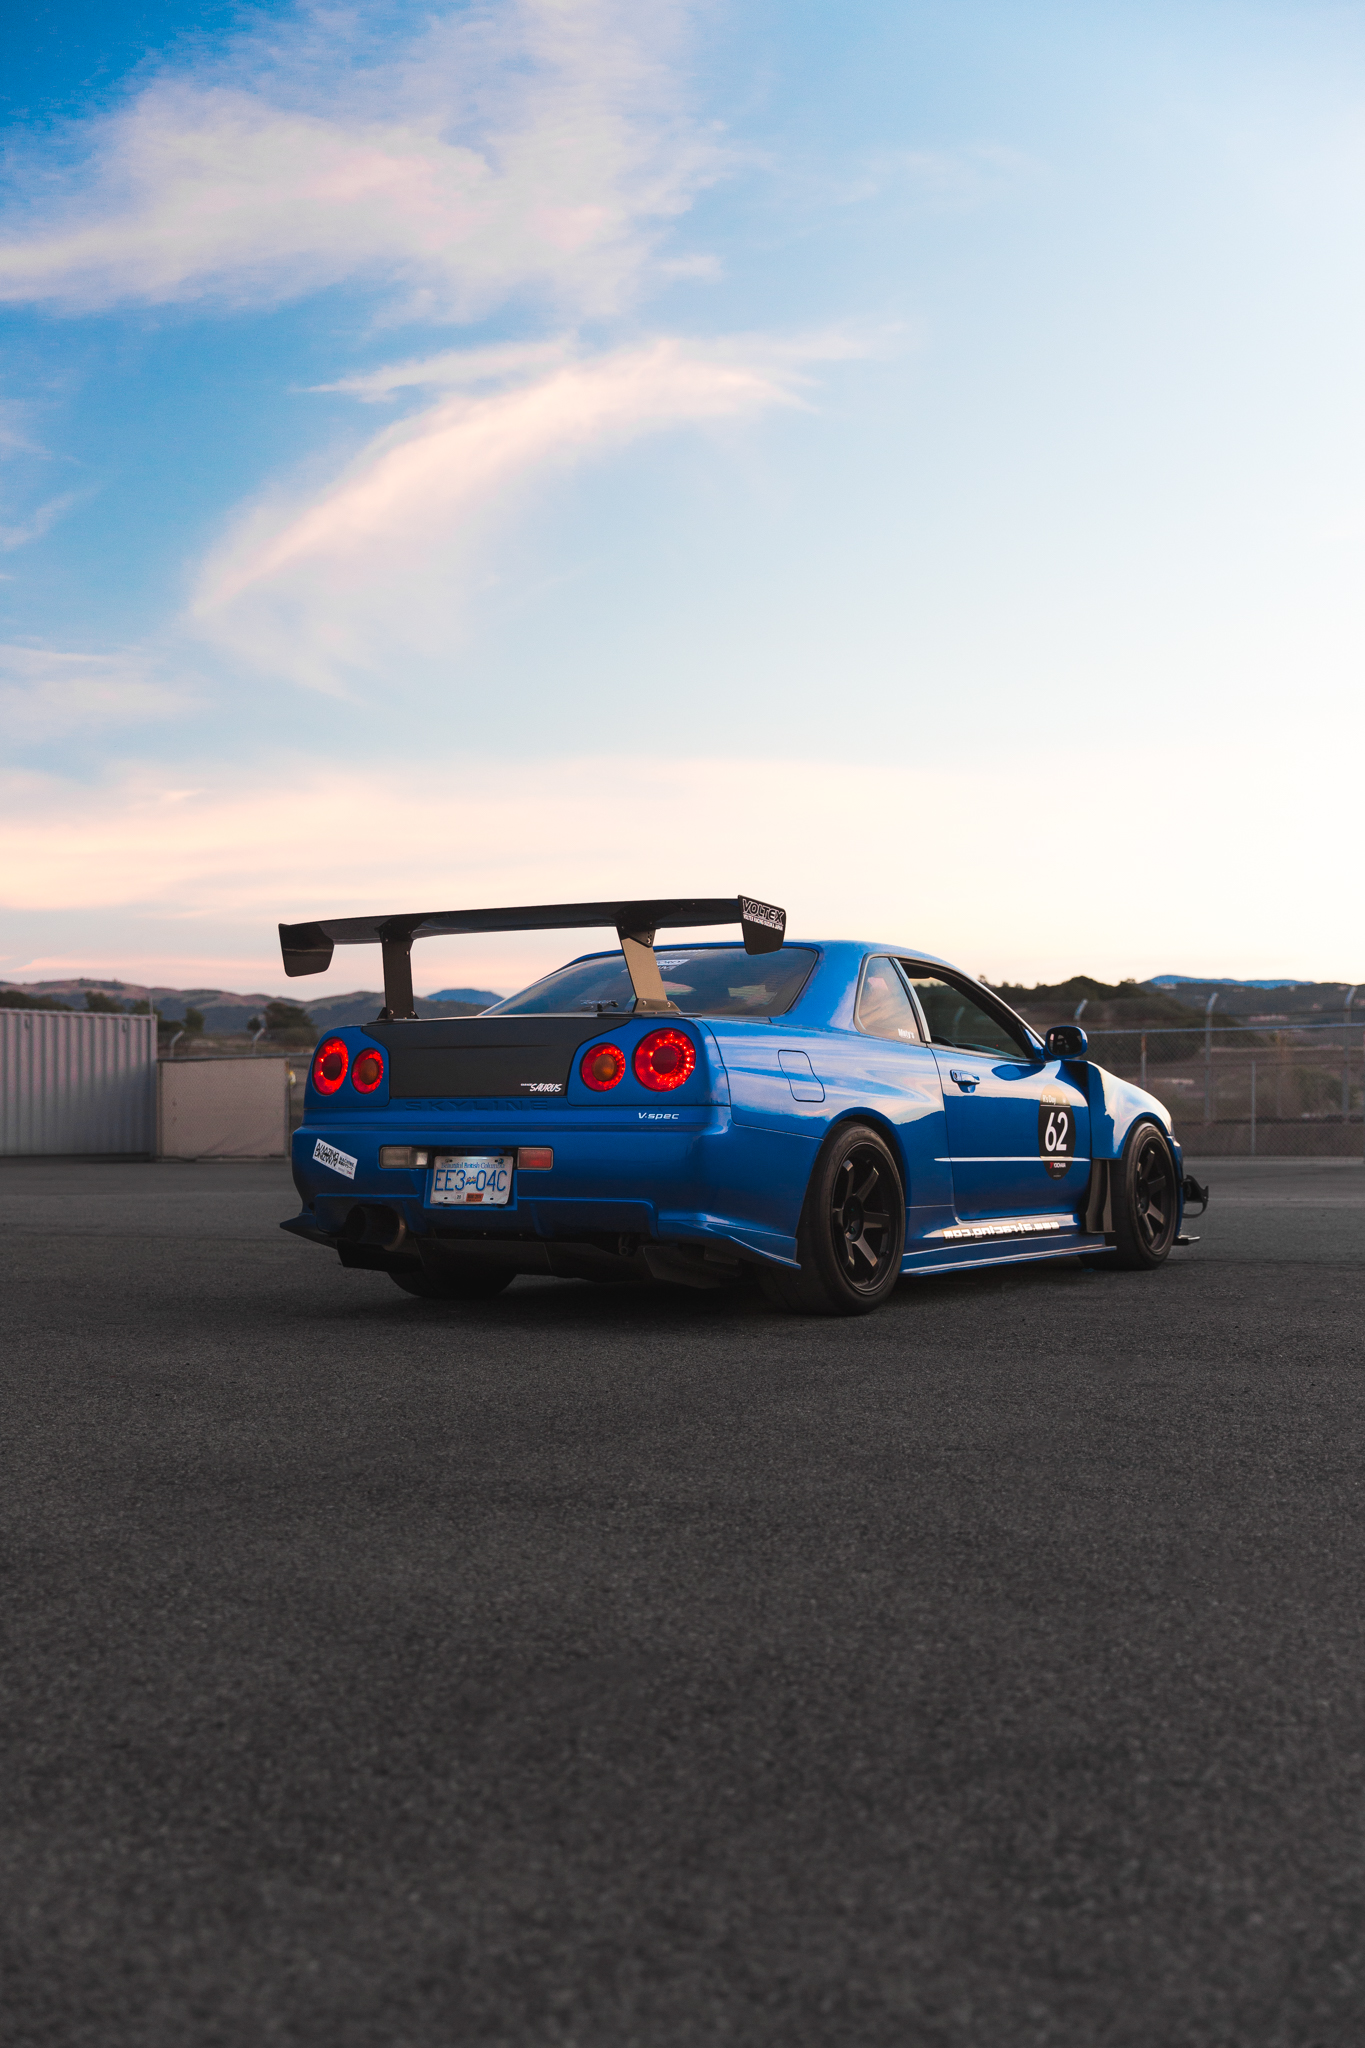 Stay_Driven_Rs_Day-151.jpg